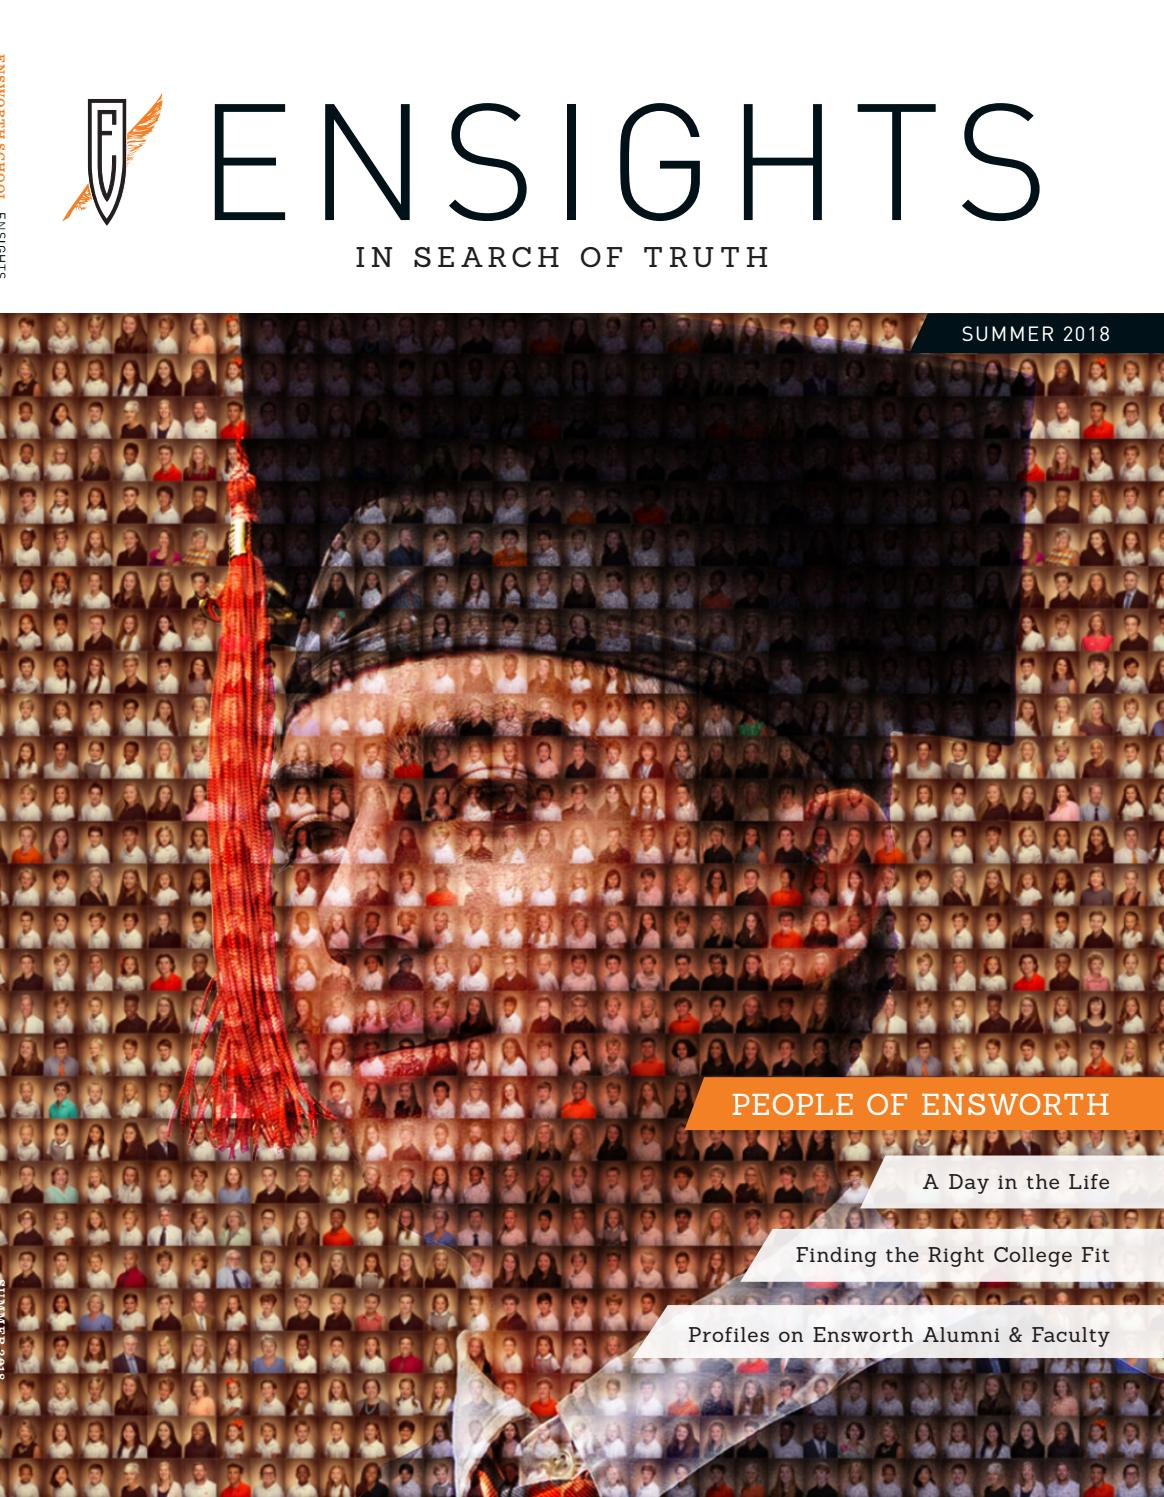 Ensworth Ensights Summer 2018 By The Ensworth School Issuu Josh potter is on mixcloud. ensworth ensights summer 2018 by the